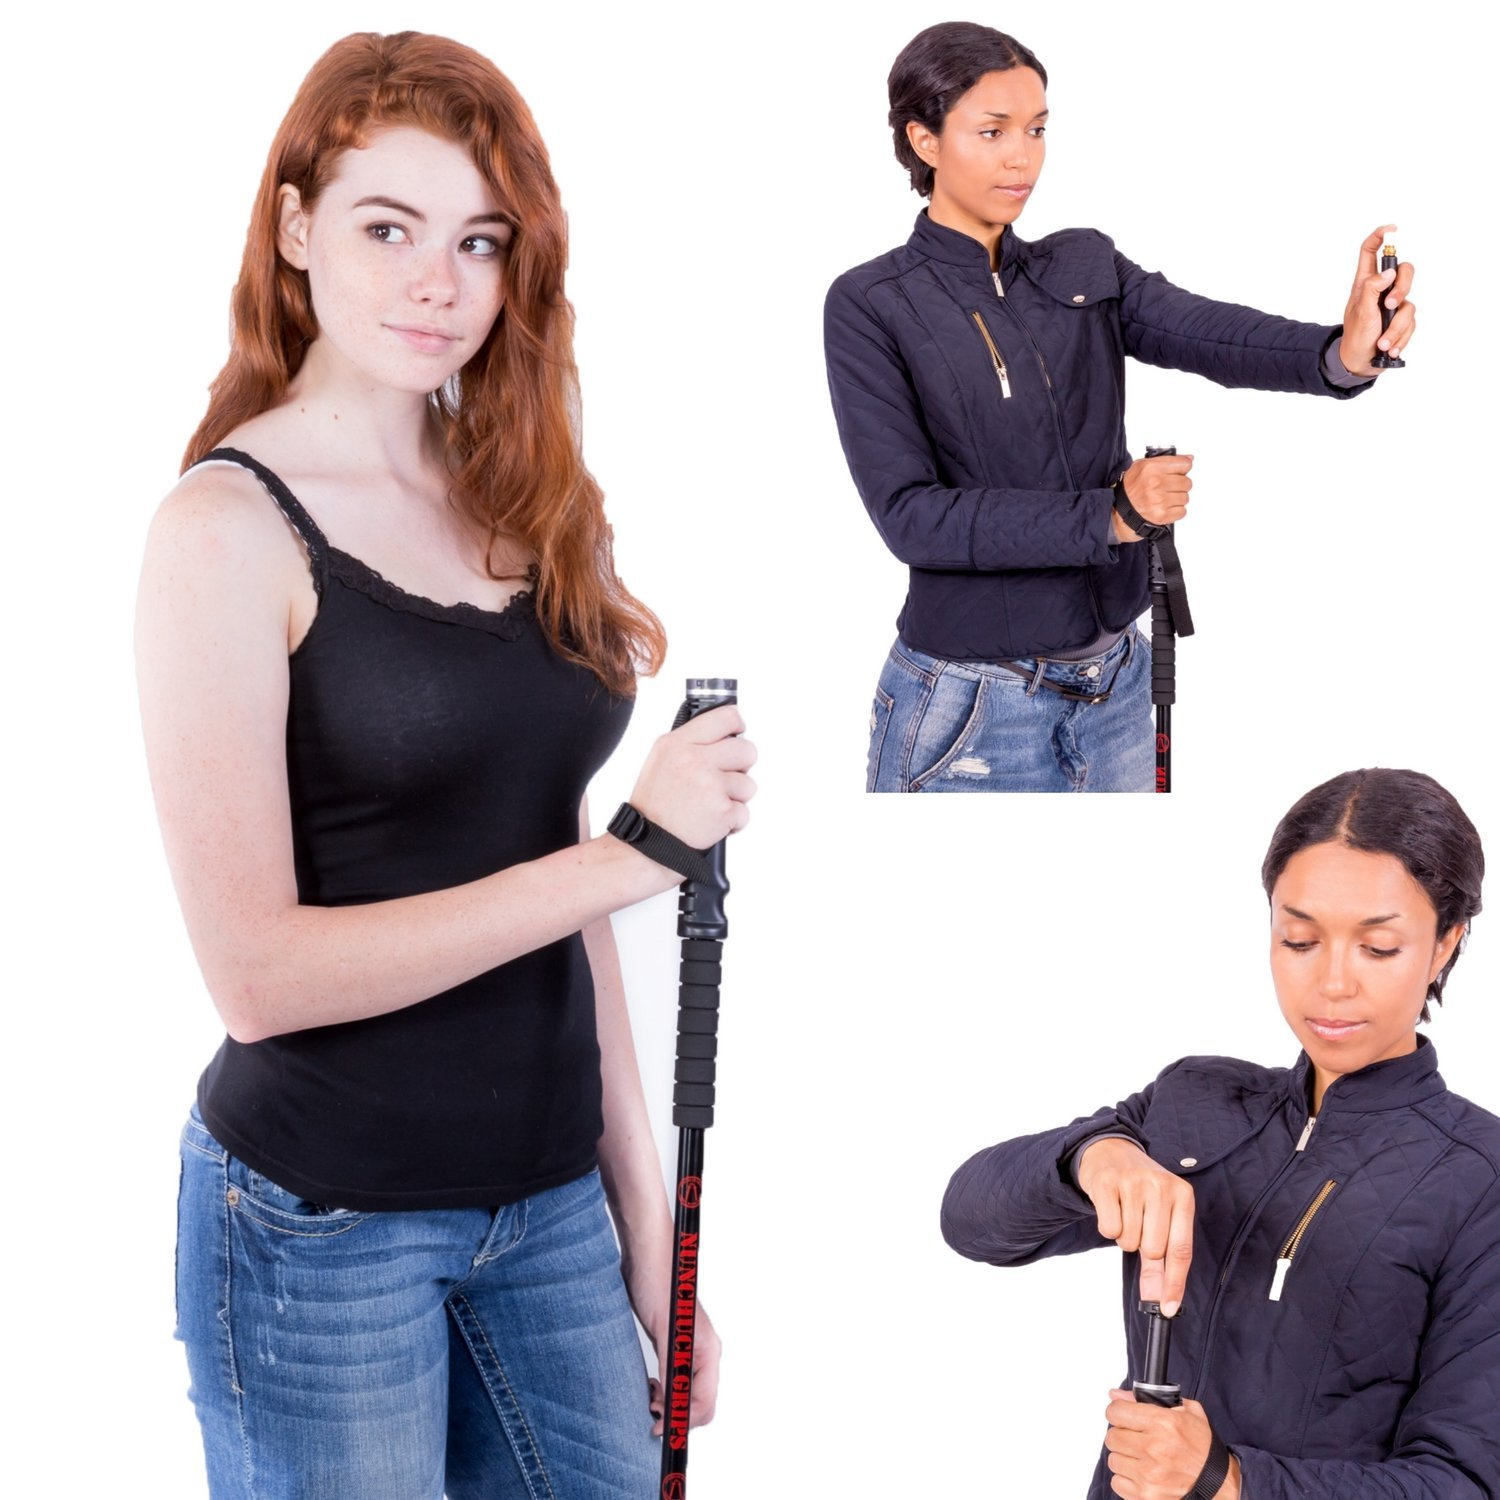 NUNCHUCK GRIPS – Hiking Walking Stick, Trekking Pole with Interchangeable Pepper Spray Accessory Hidden within the Grip, Single 1 stick